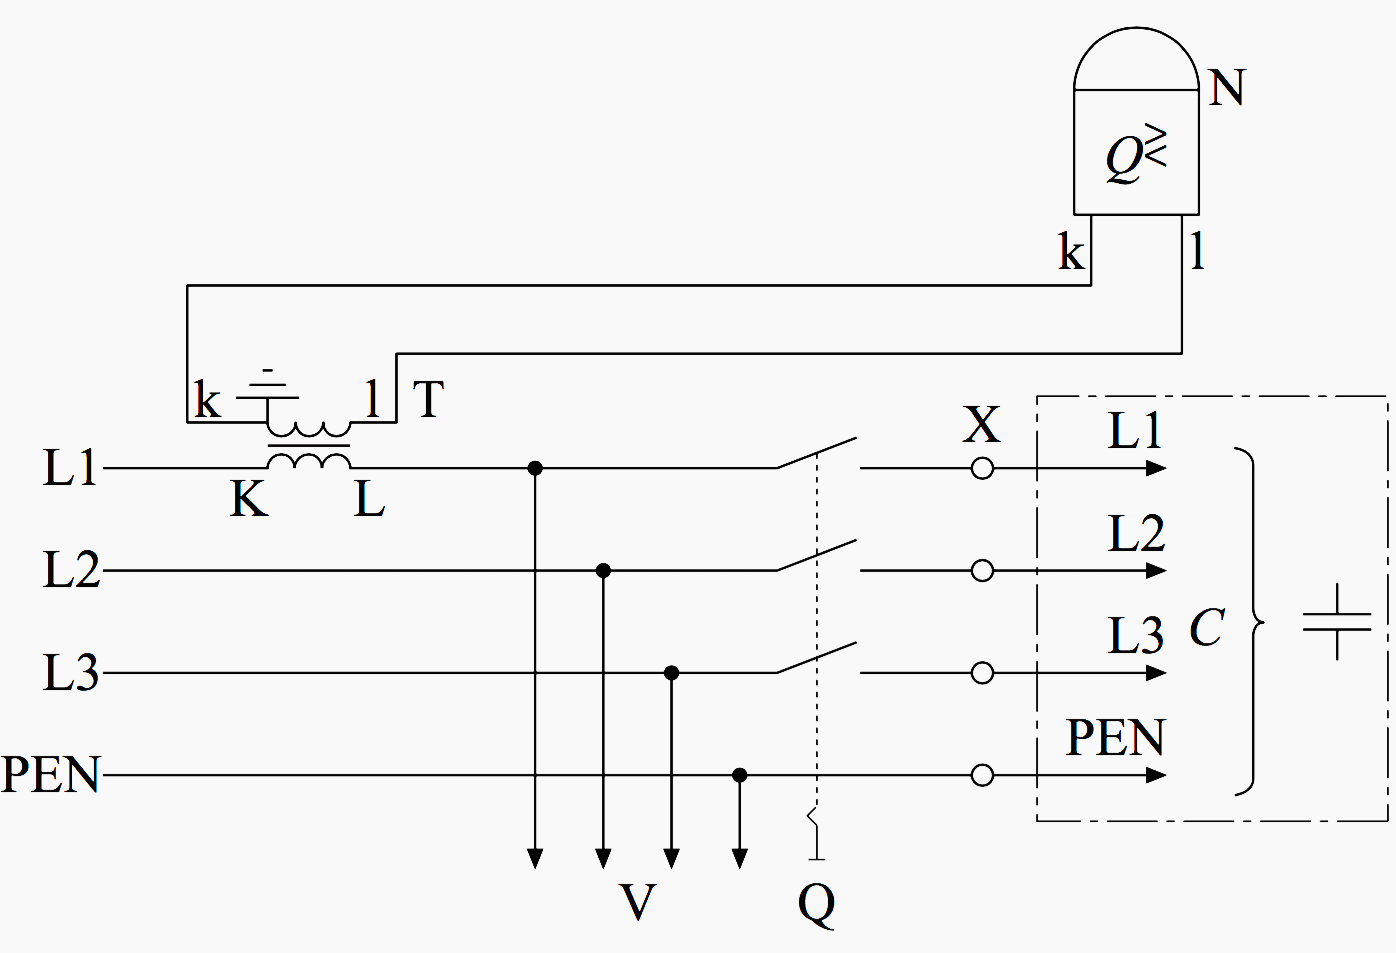 Wiring Of Power Factor Relay On LV And MV Side (circuit